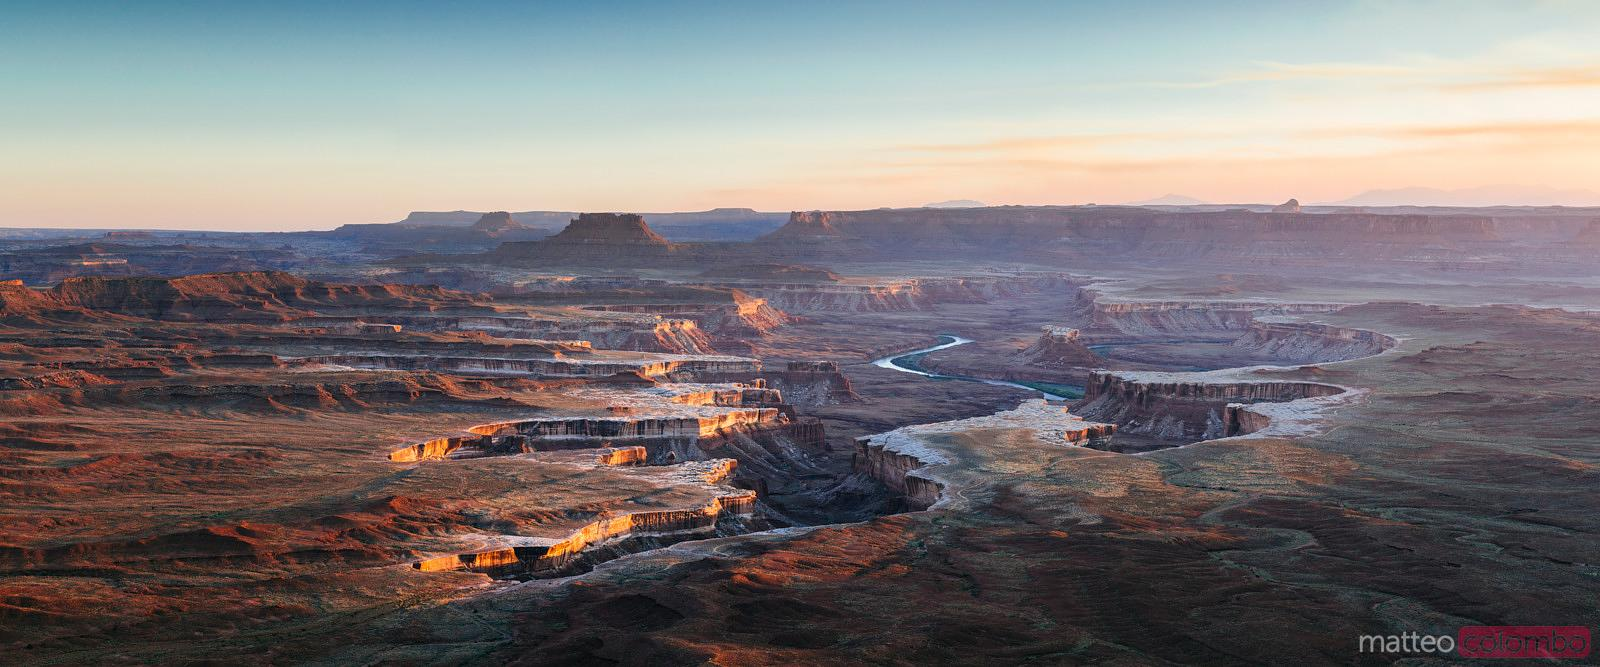 Panoramic of Green river overlook, Canyonlands, USA